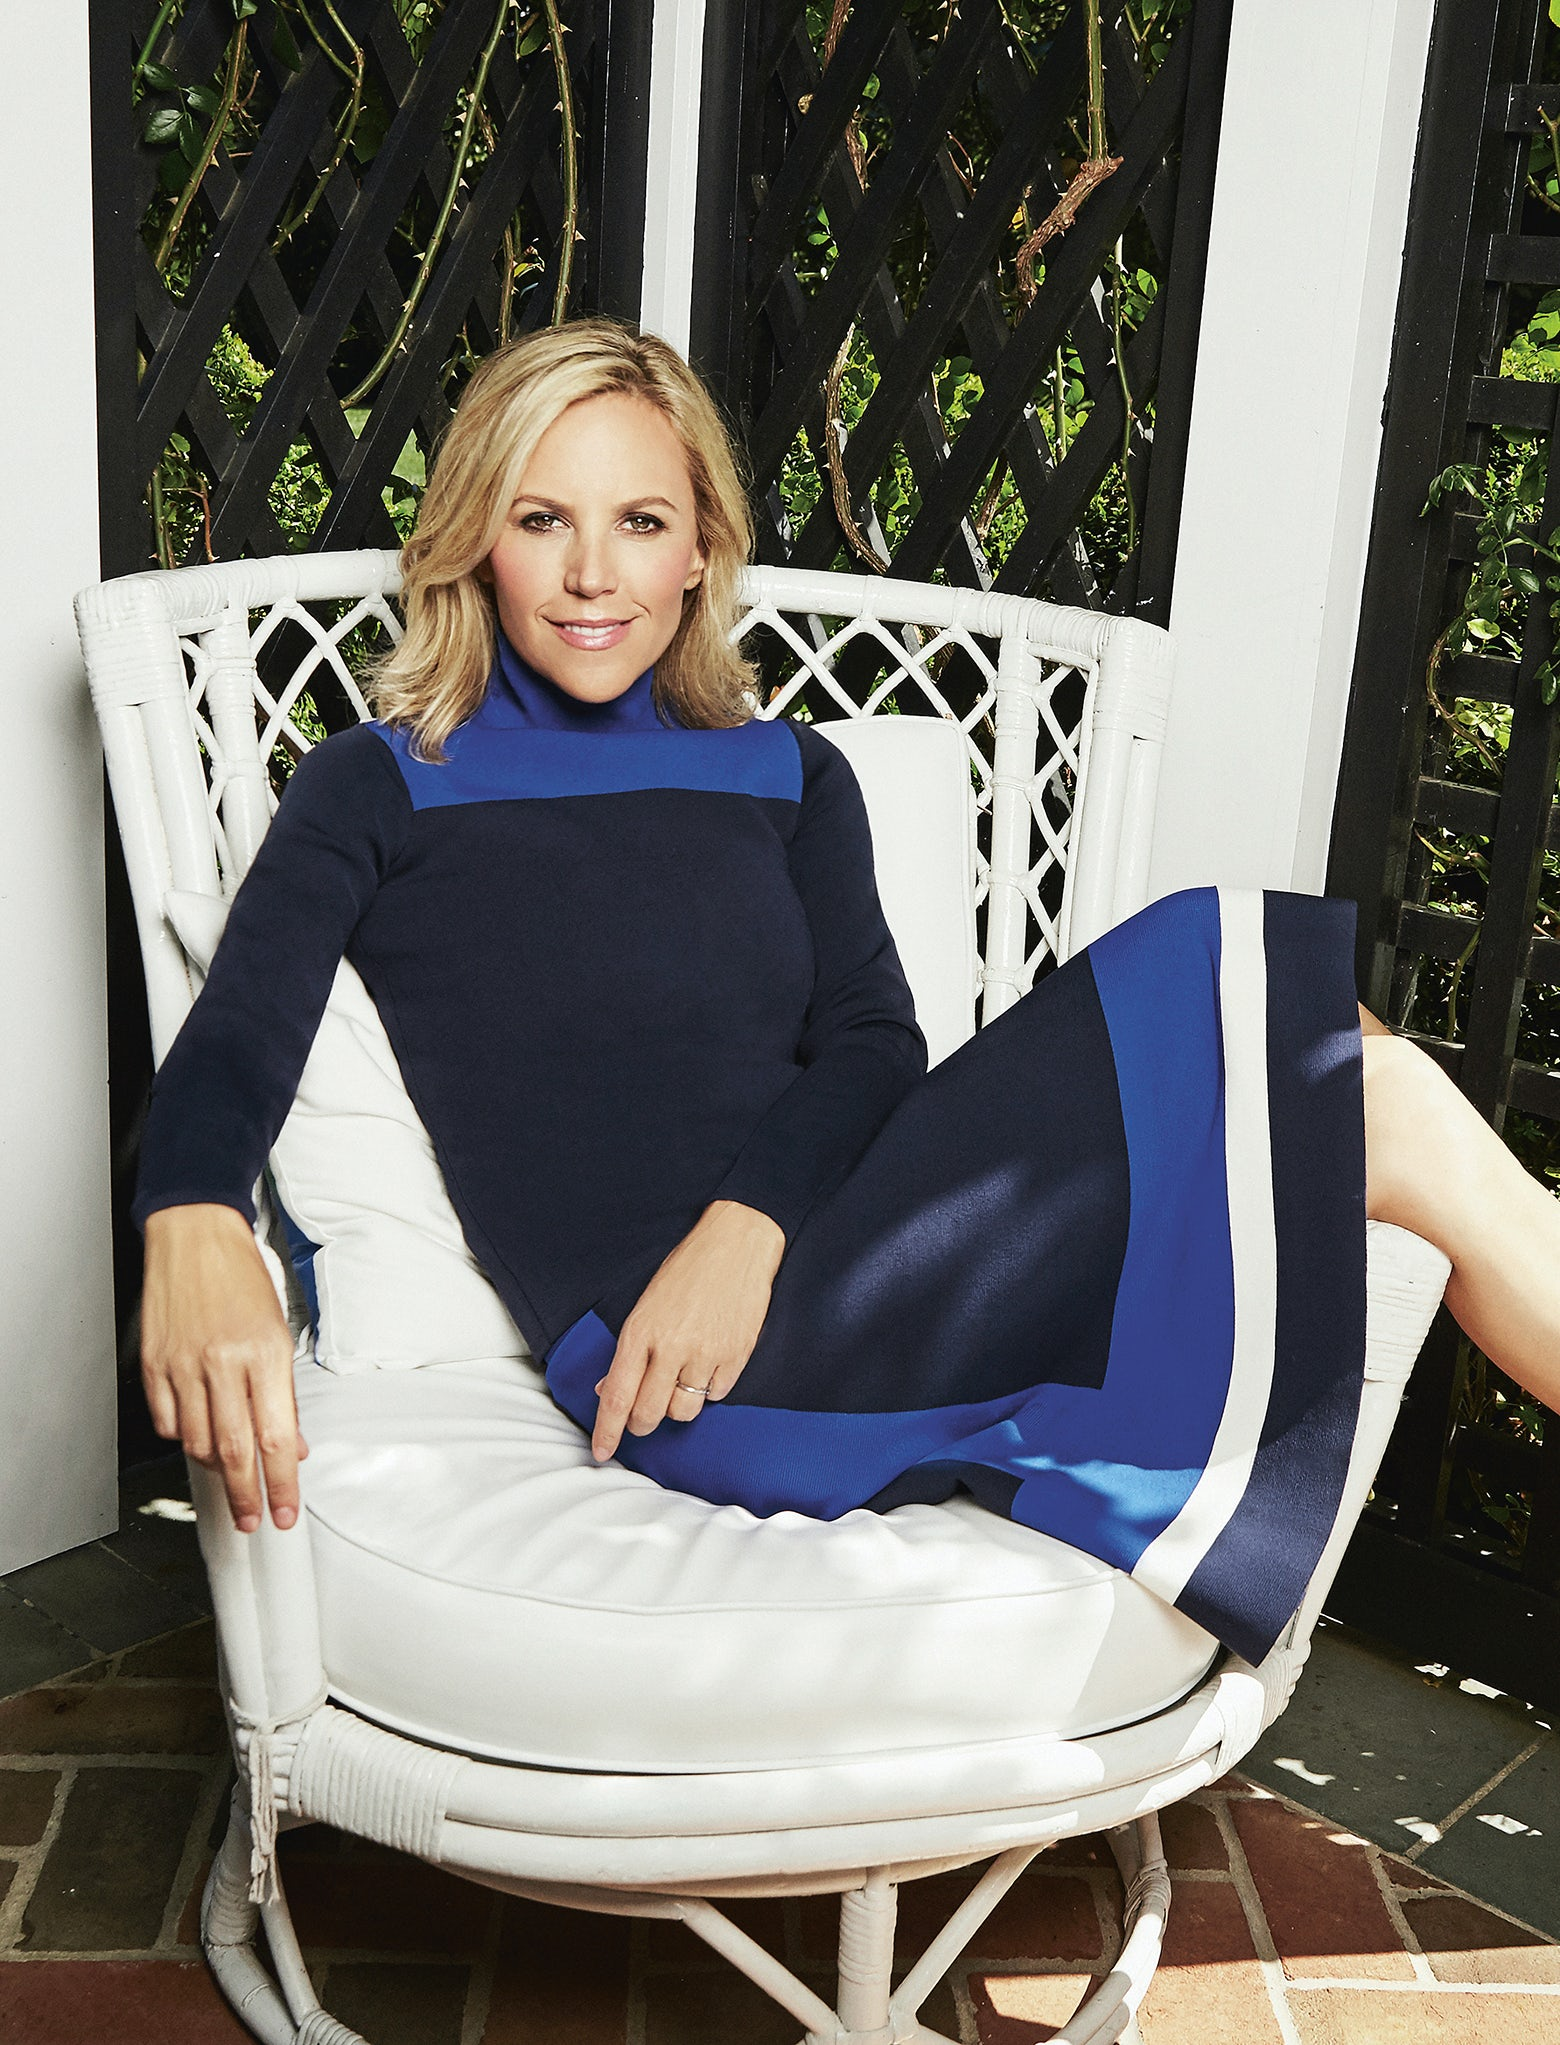 Can Tory Burch Build Another Billion-Dollar Brand?